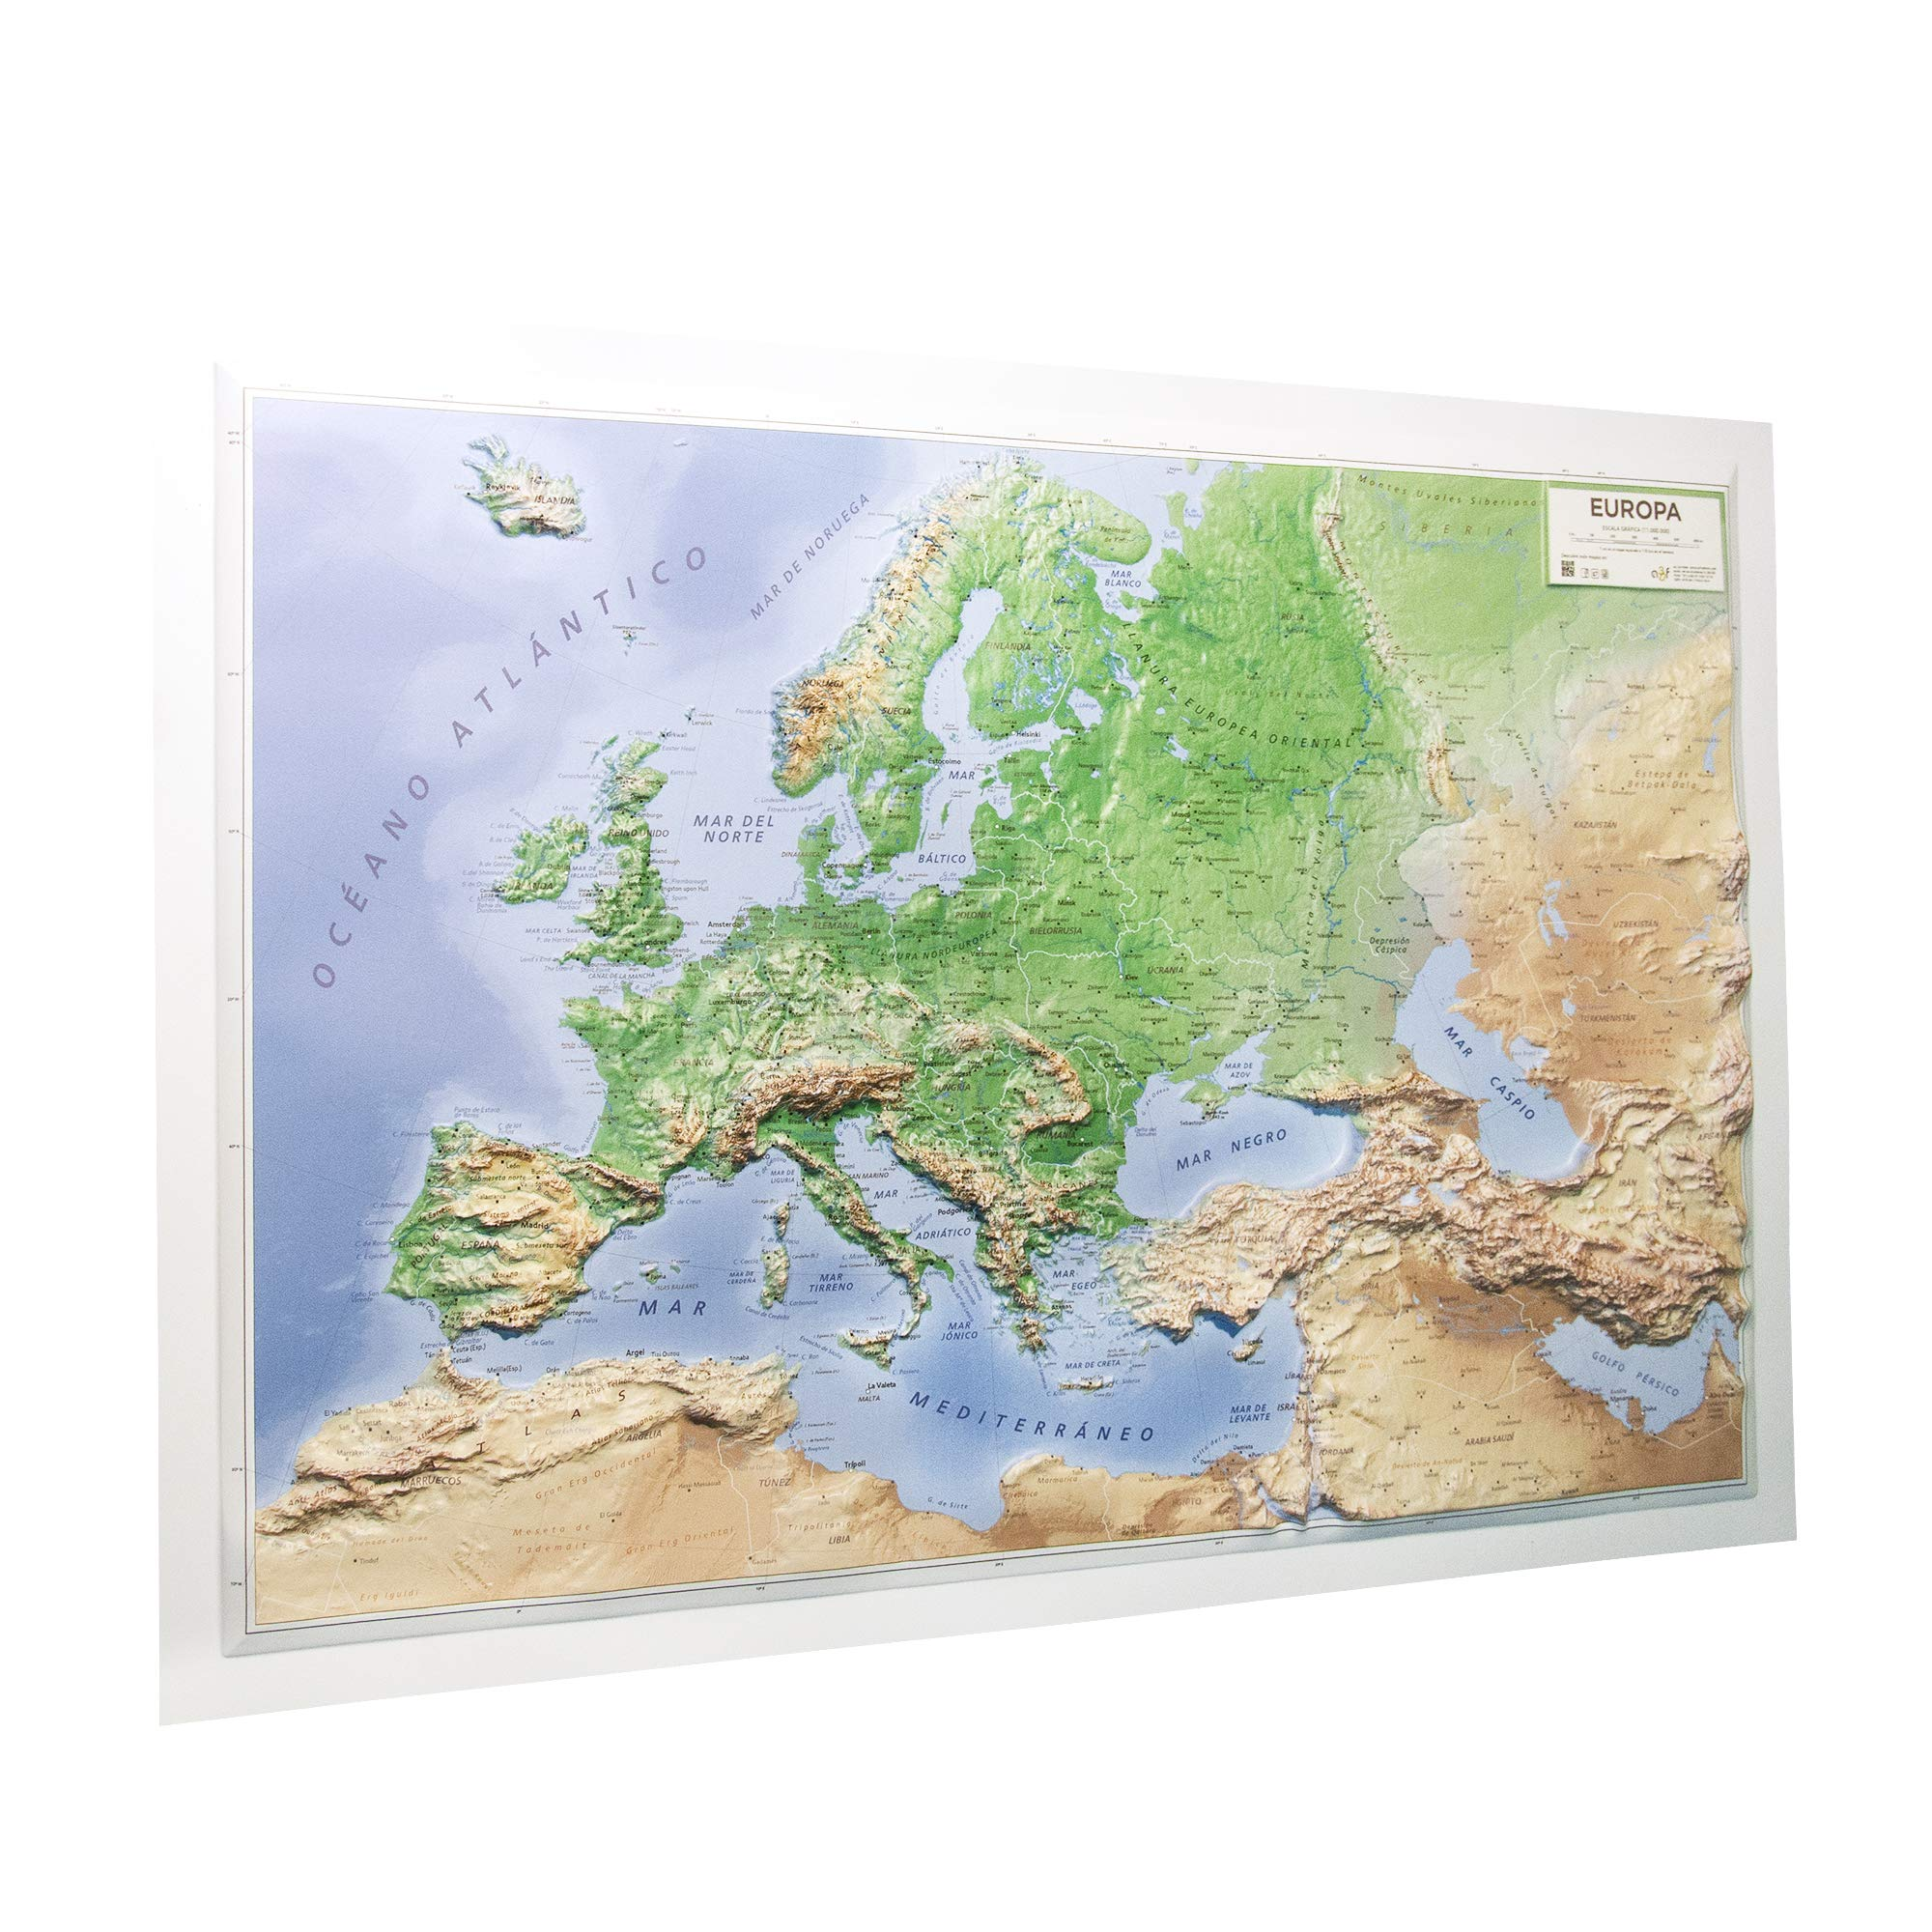 Mapa en relieve de Europa físico: Escala 1:11.000.000: Amazon.es ...